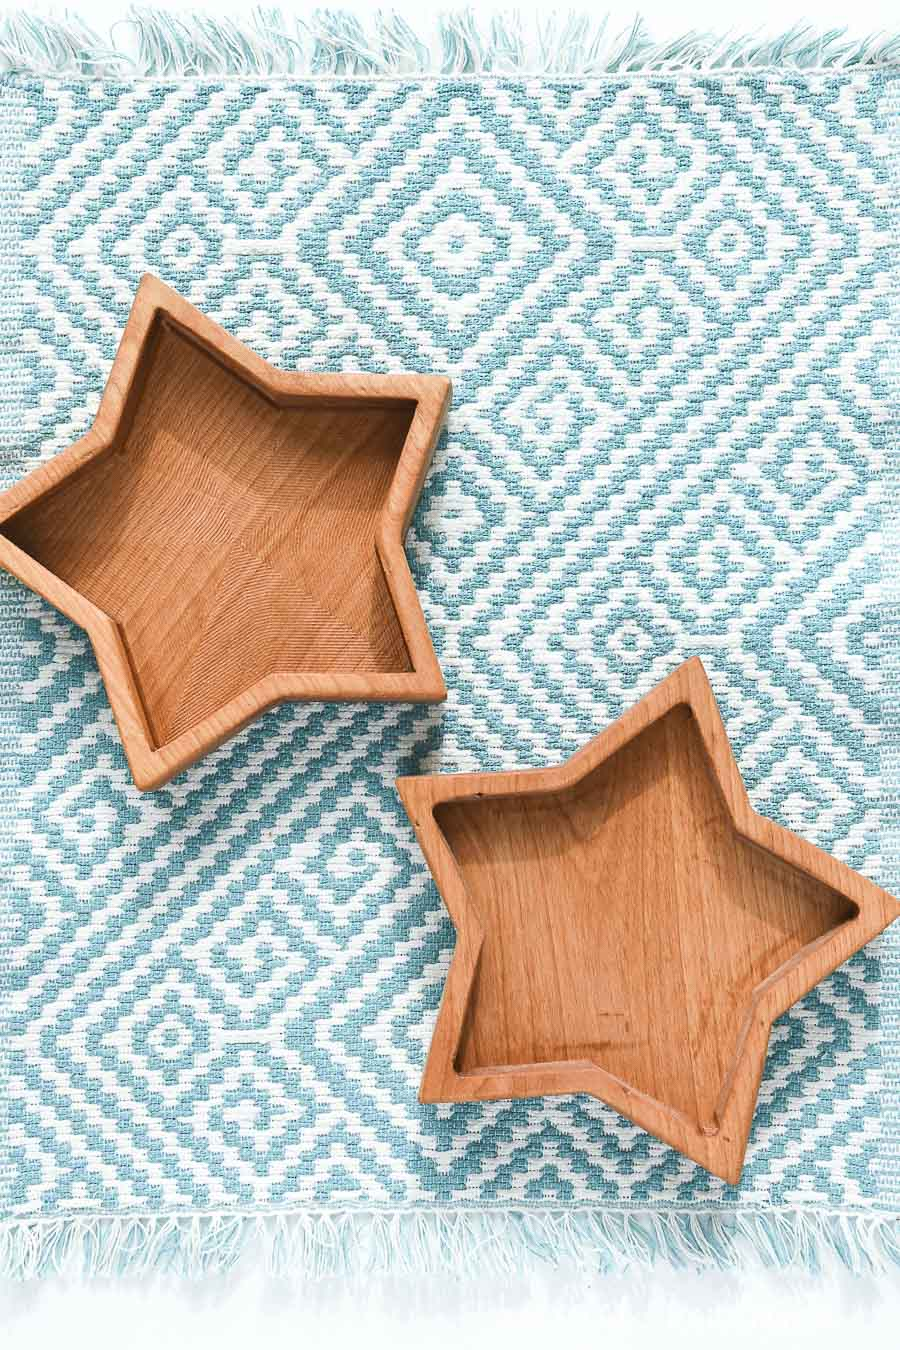 Wooden star boxes on a blue and white placemat